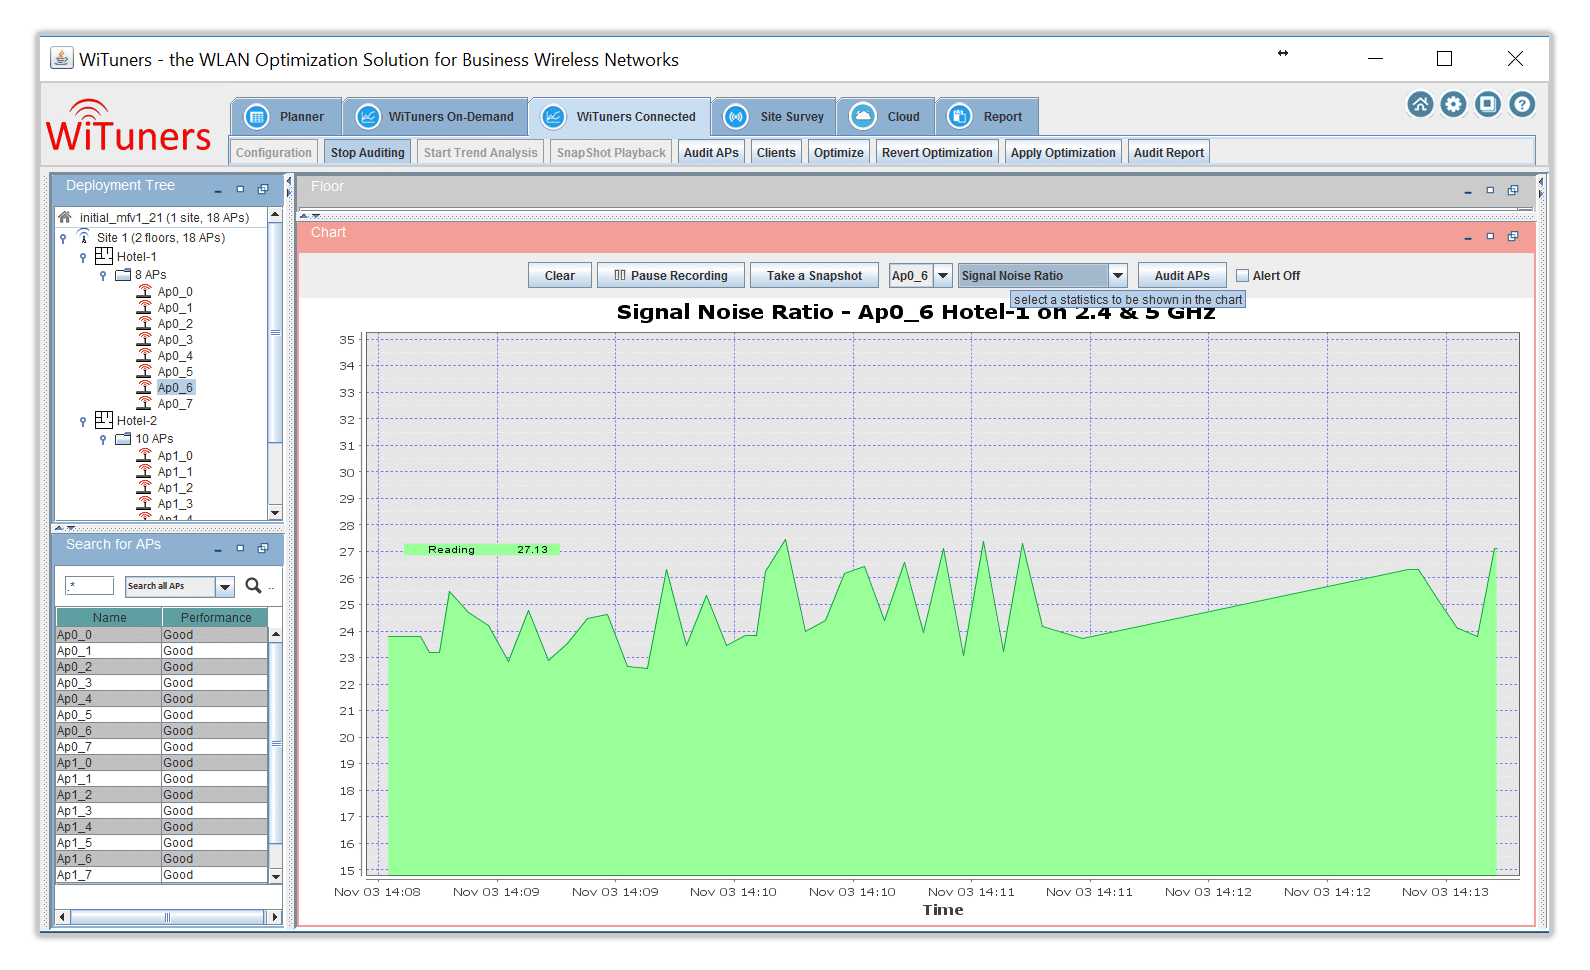 Selected AP signal noise ratio in WiFi Monitoring Software